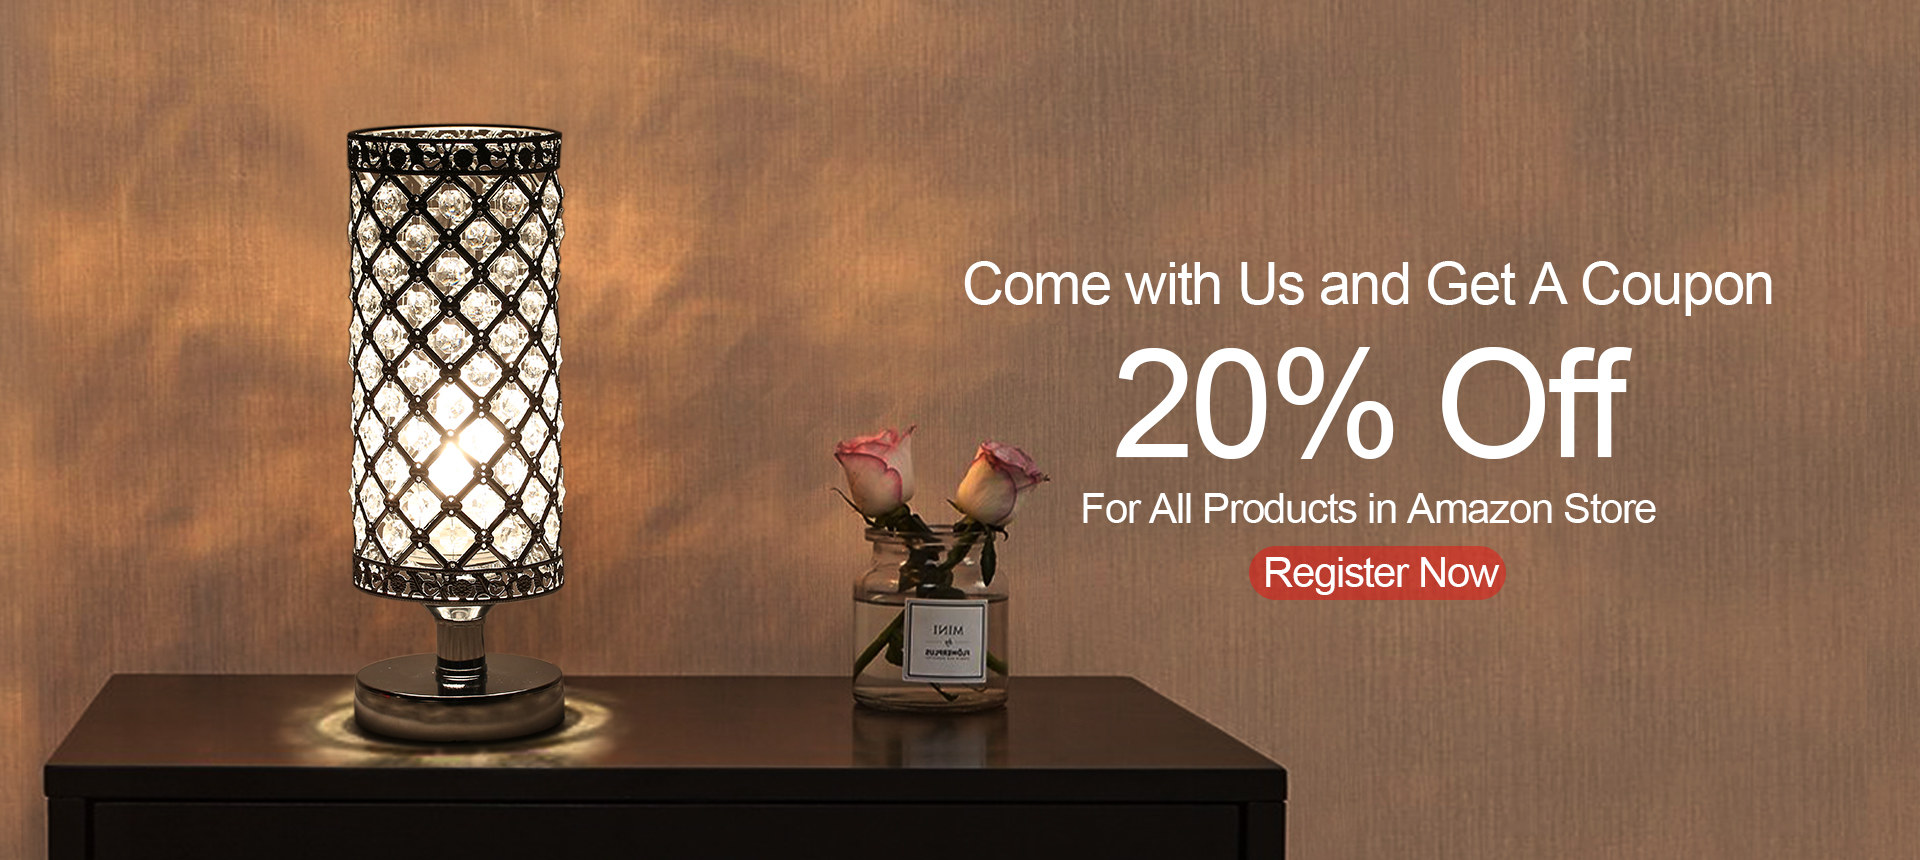 Table Lamp Banner